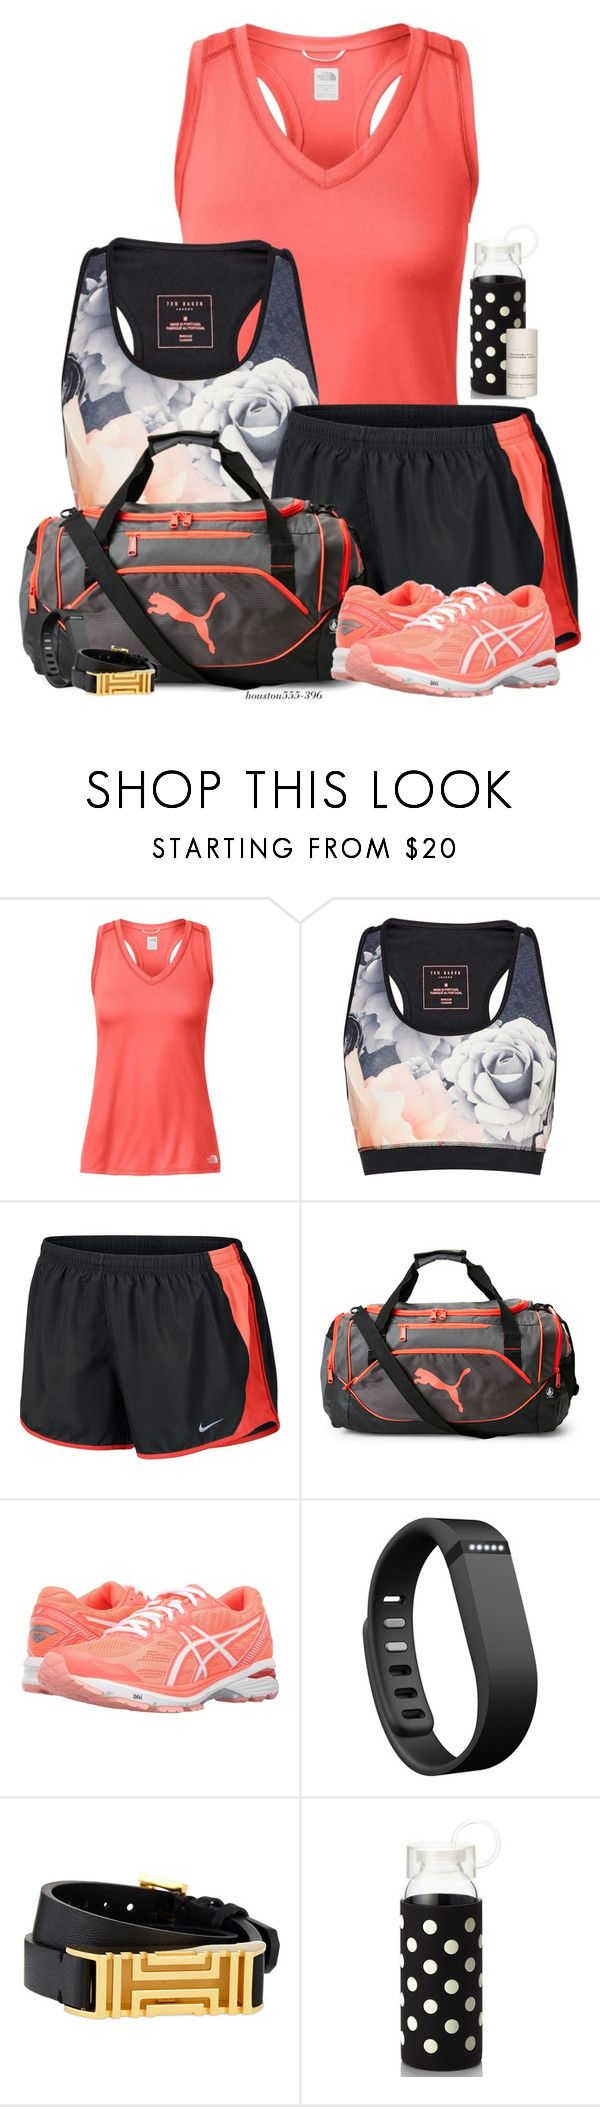 """Running out of time!"" by houston555-396 ❤ liked on Polyvore featuring The North Face, Ted Baker, NIKE, Puma, Asics, Fitbit, Tory Burch, Kate Spade and Donna Karan"